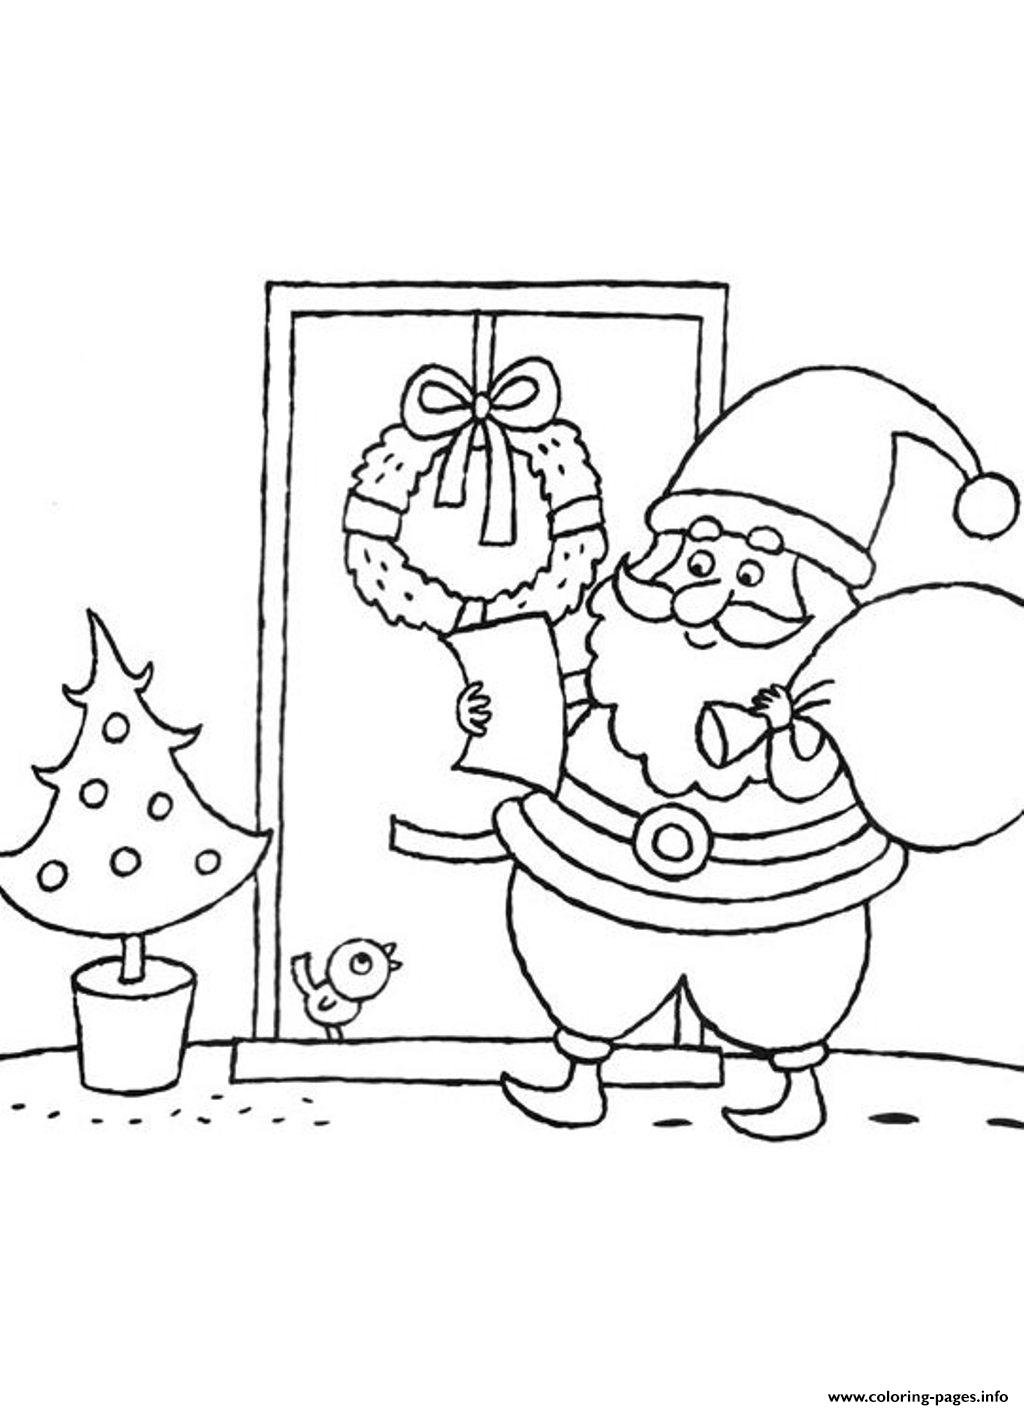 read a list santa claus s84c0 coloring pages printable